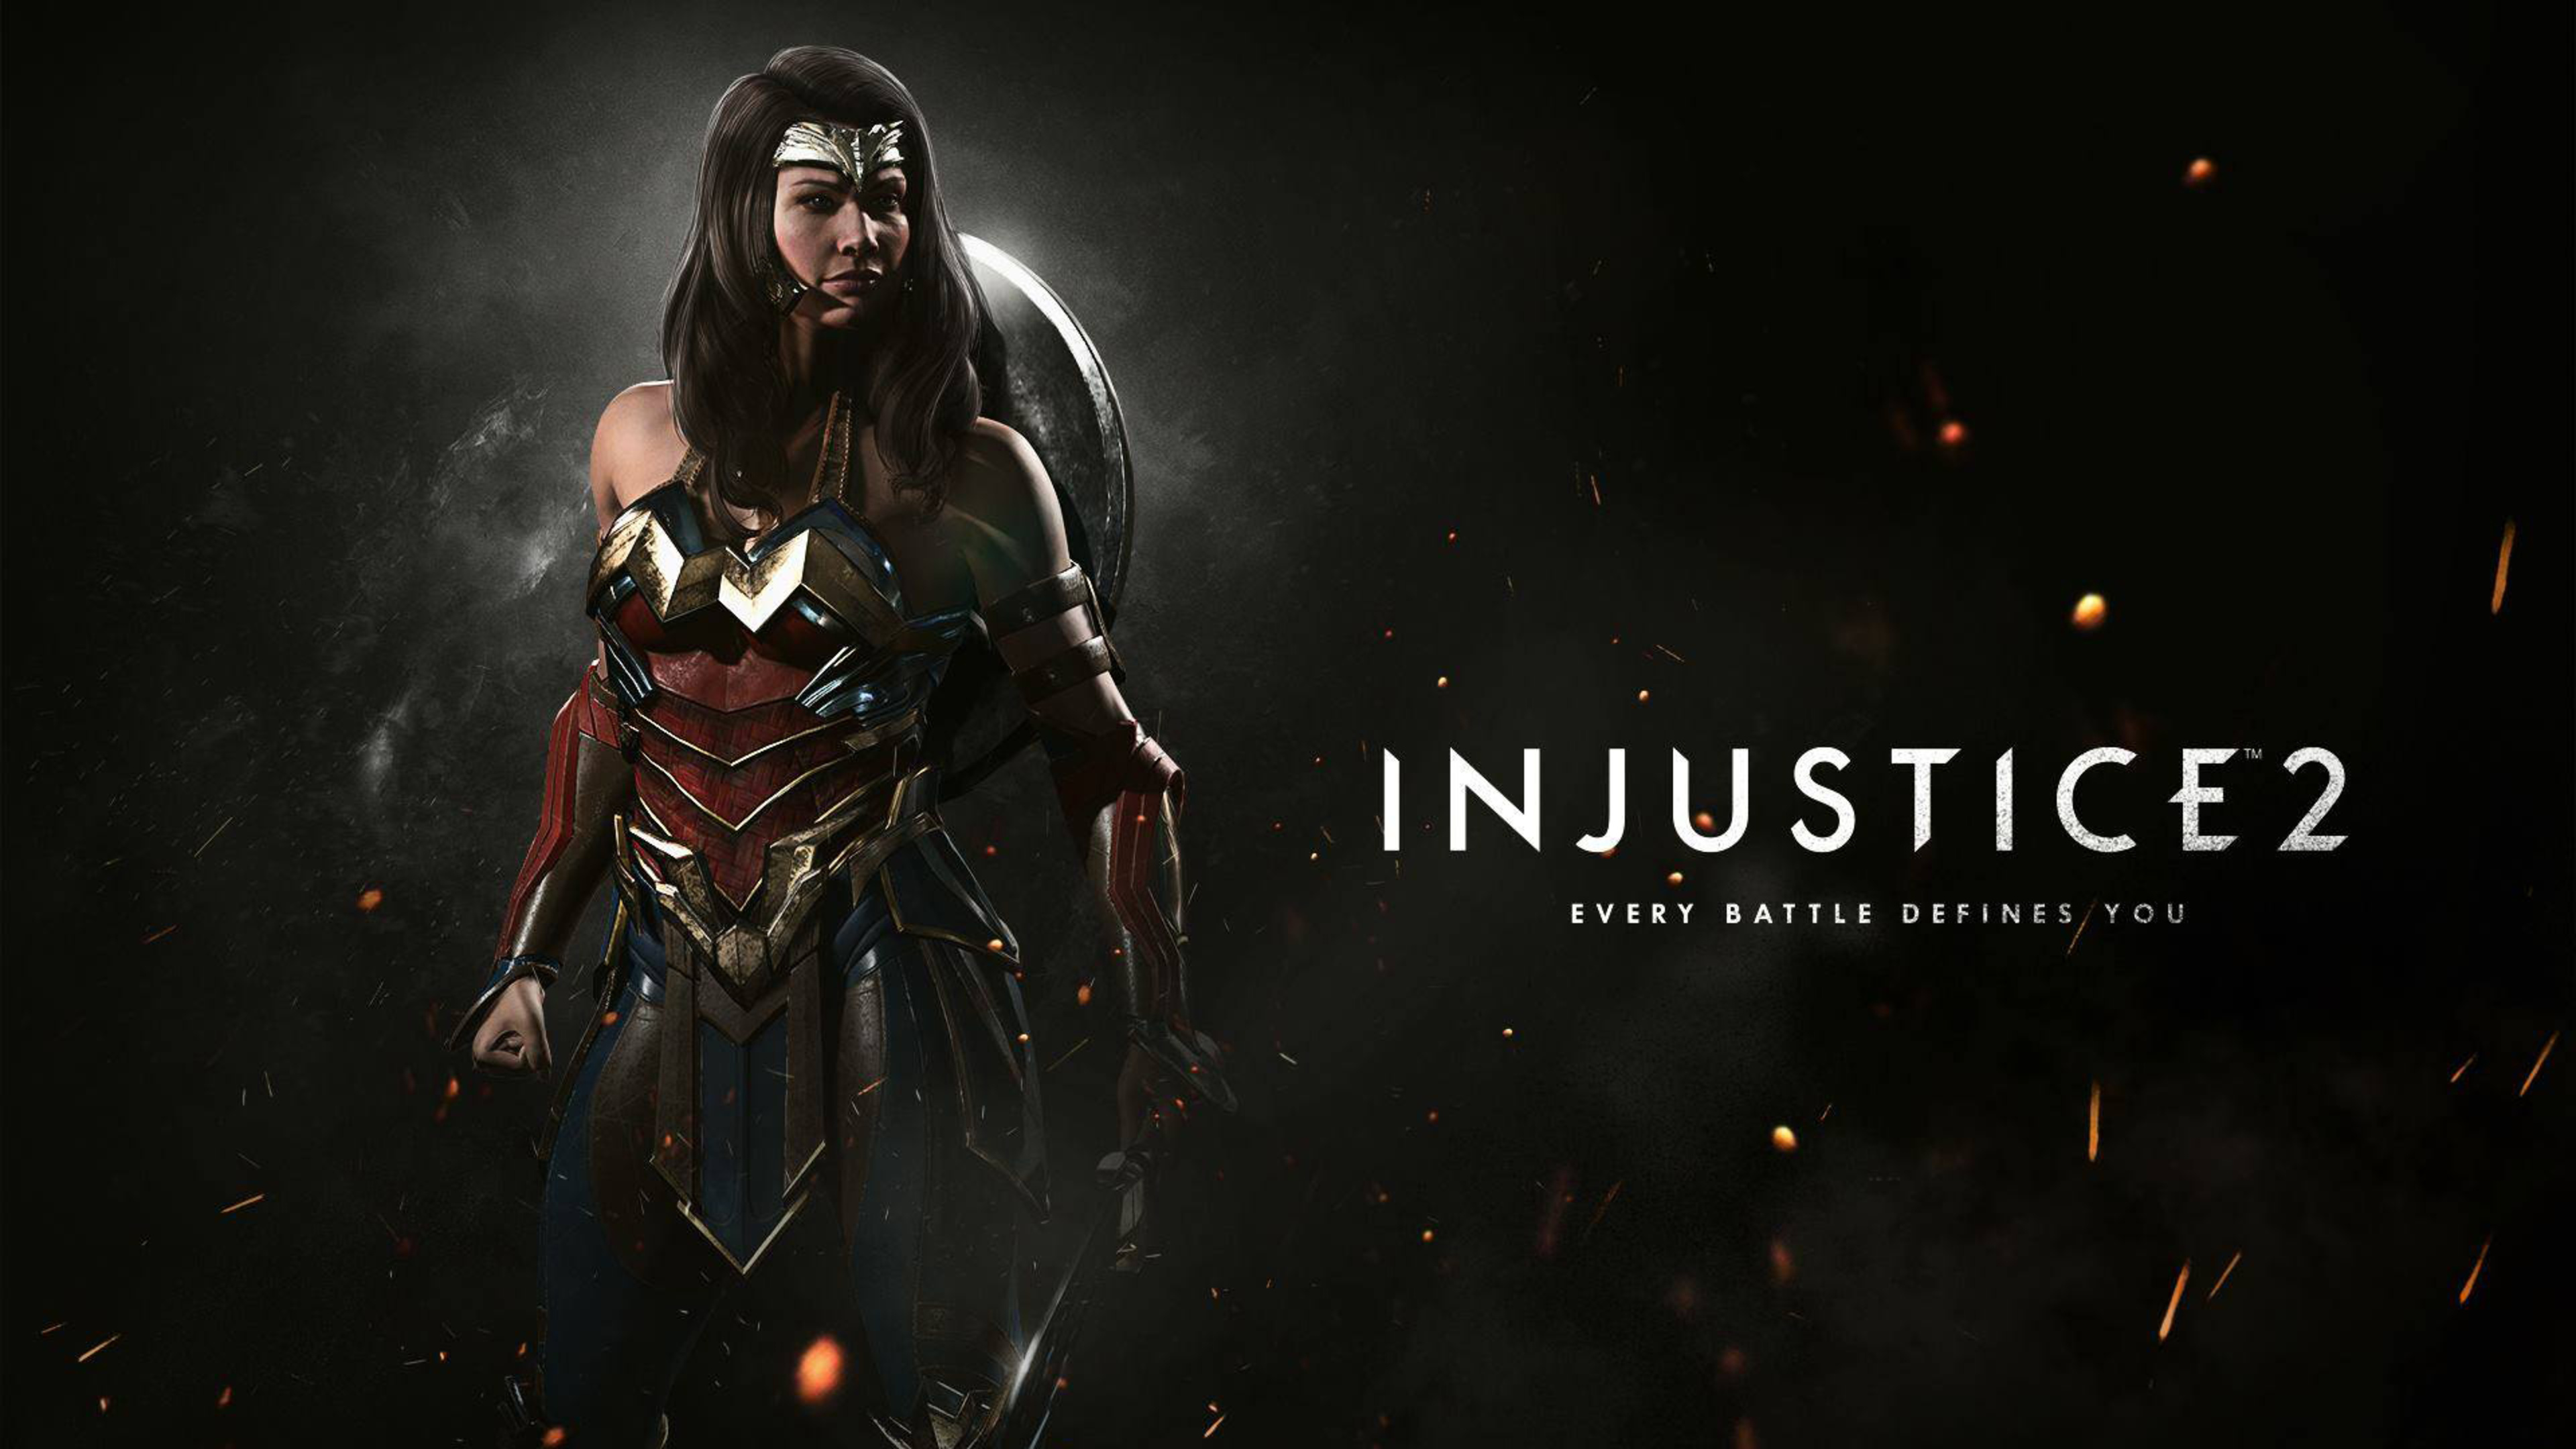 wonder-woman-in-injustice-2-hd.jpg